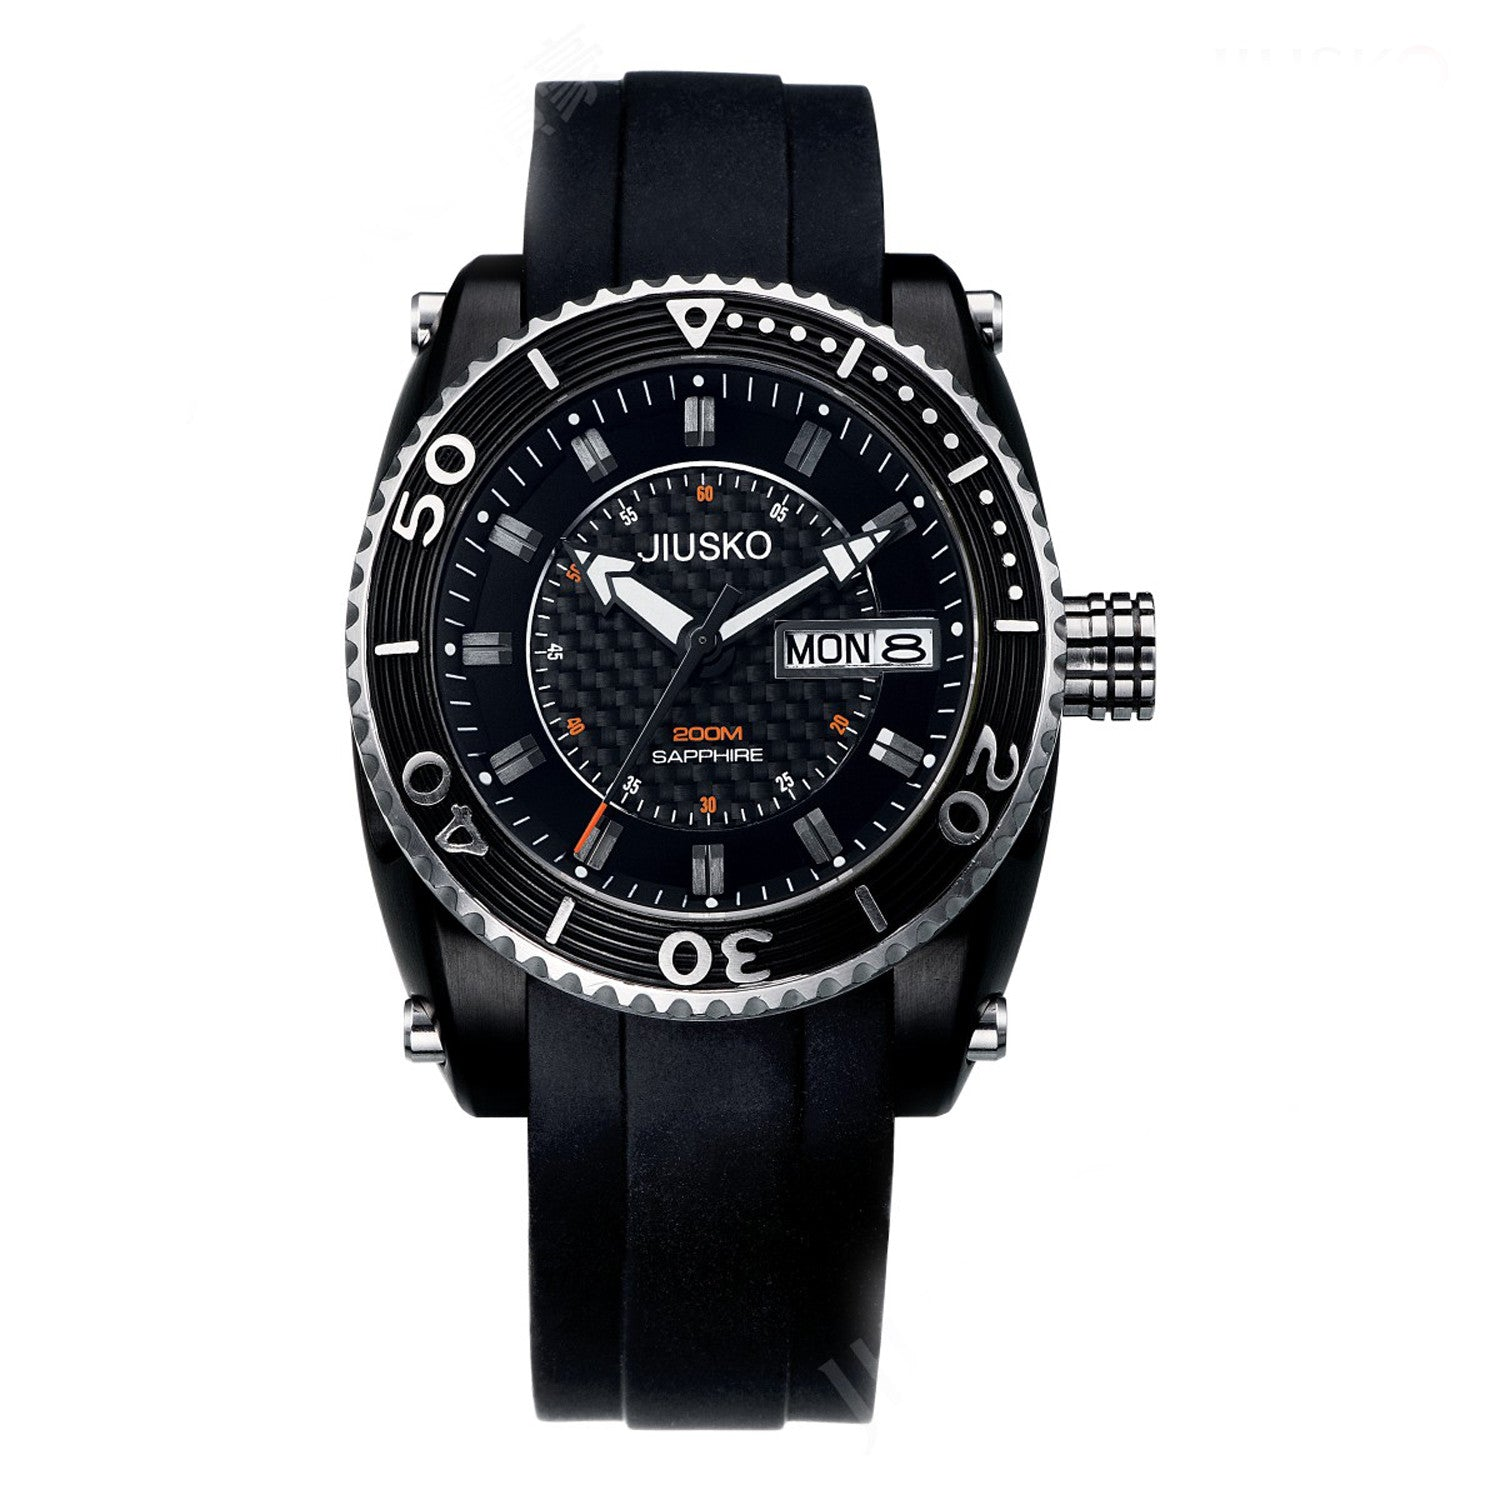 Jiusko Watch,Men's-Sport-Casual-Quartz-Silicone-300mm-38LB0202